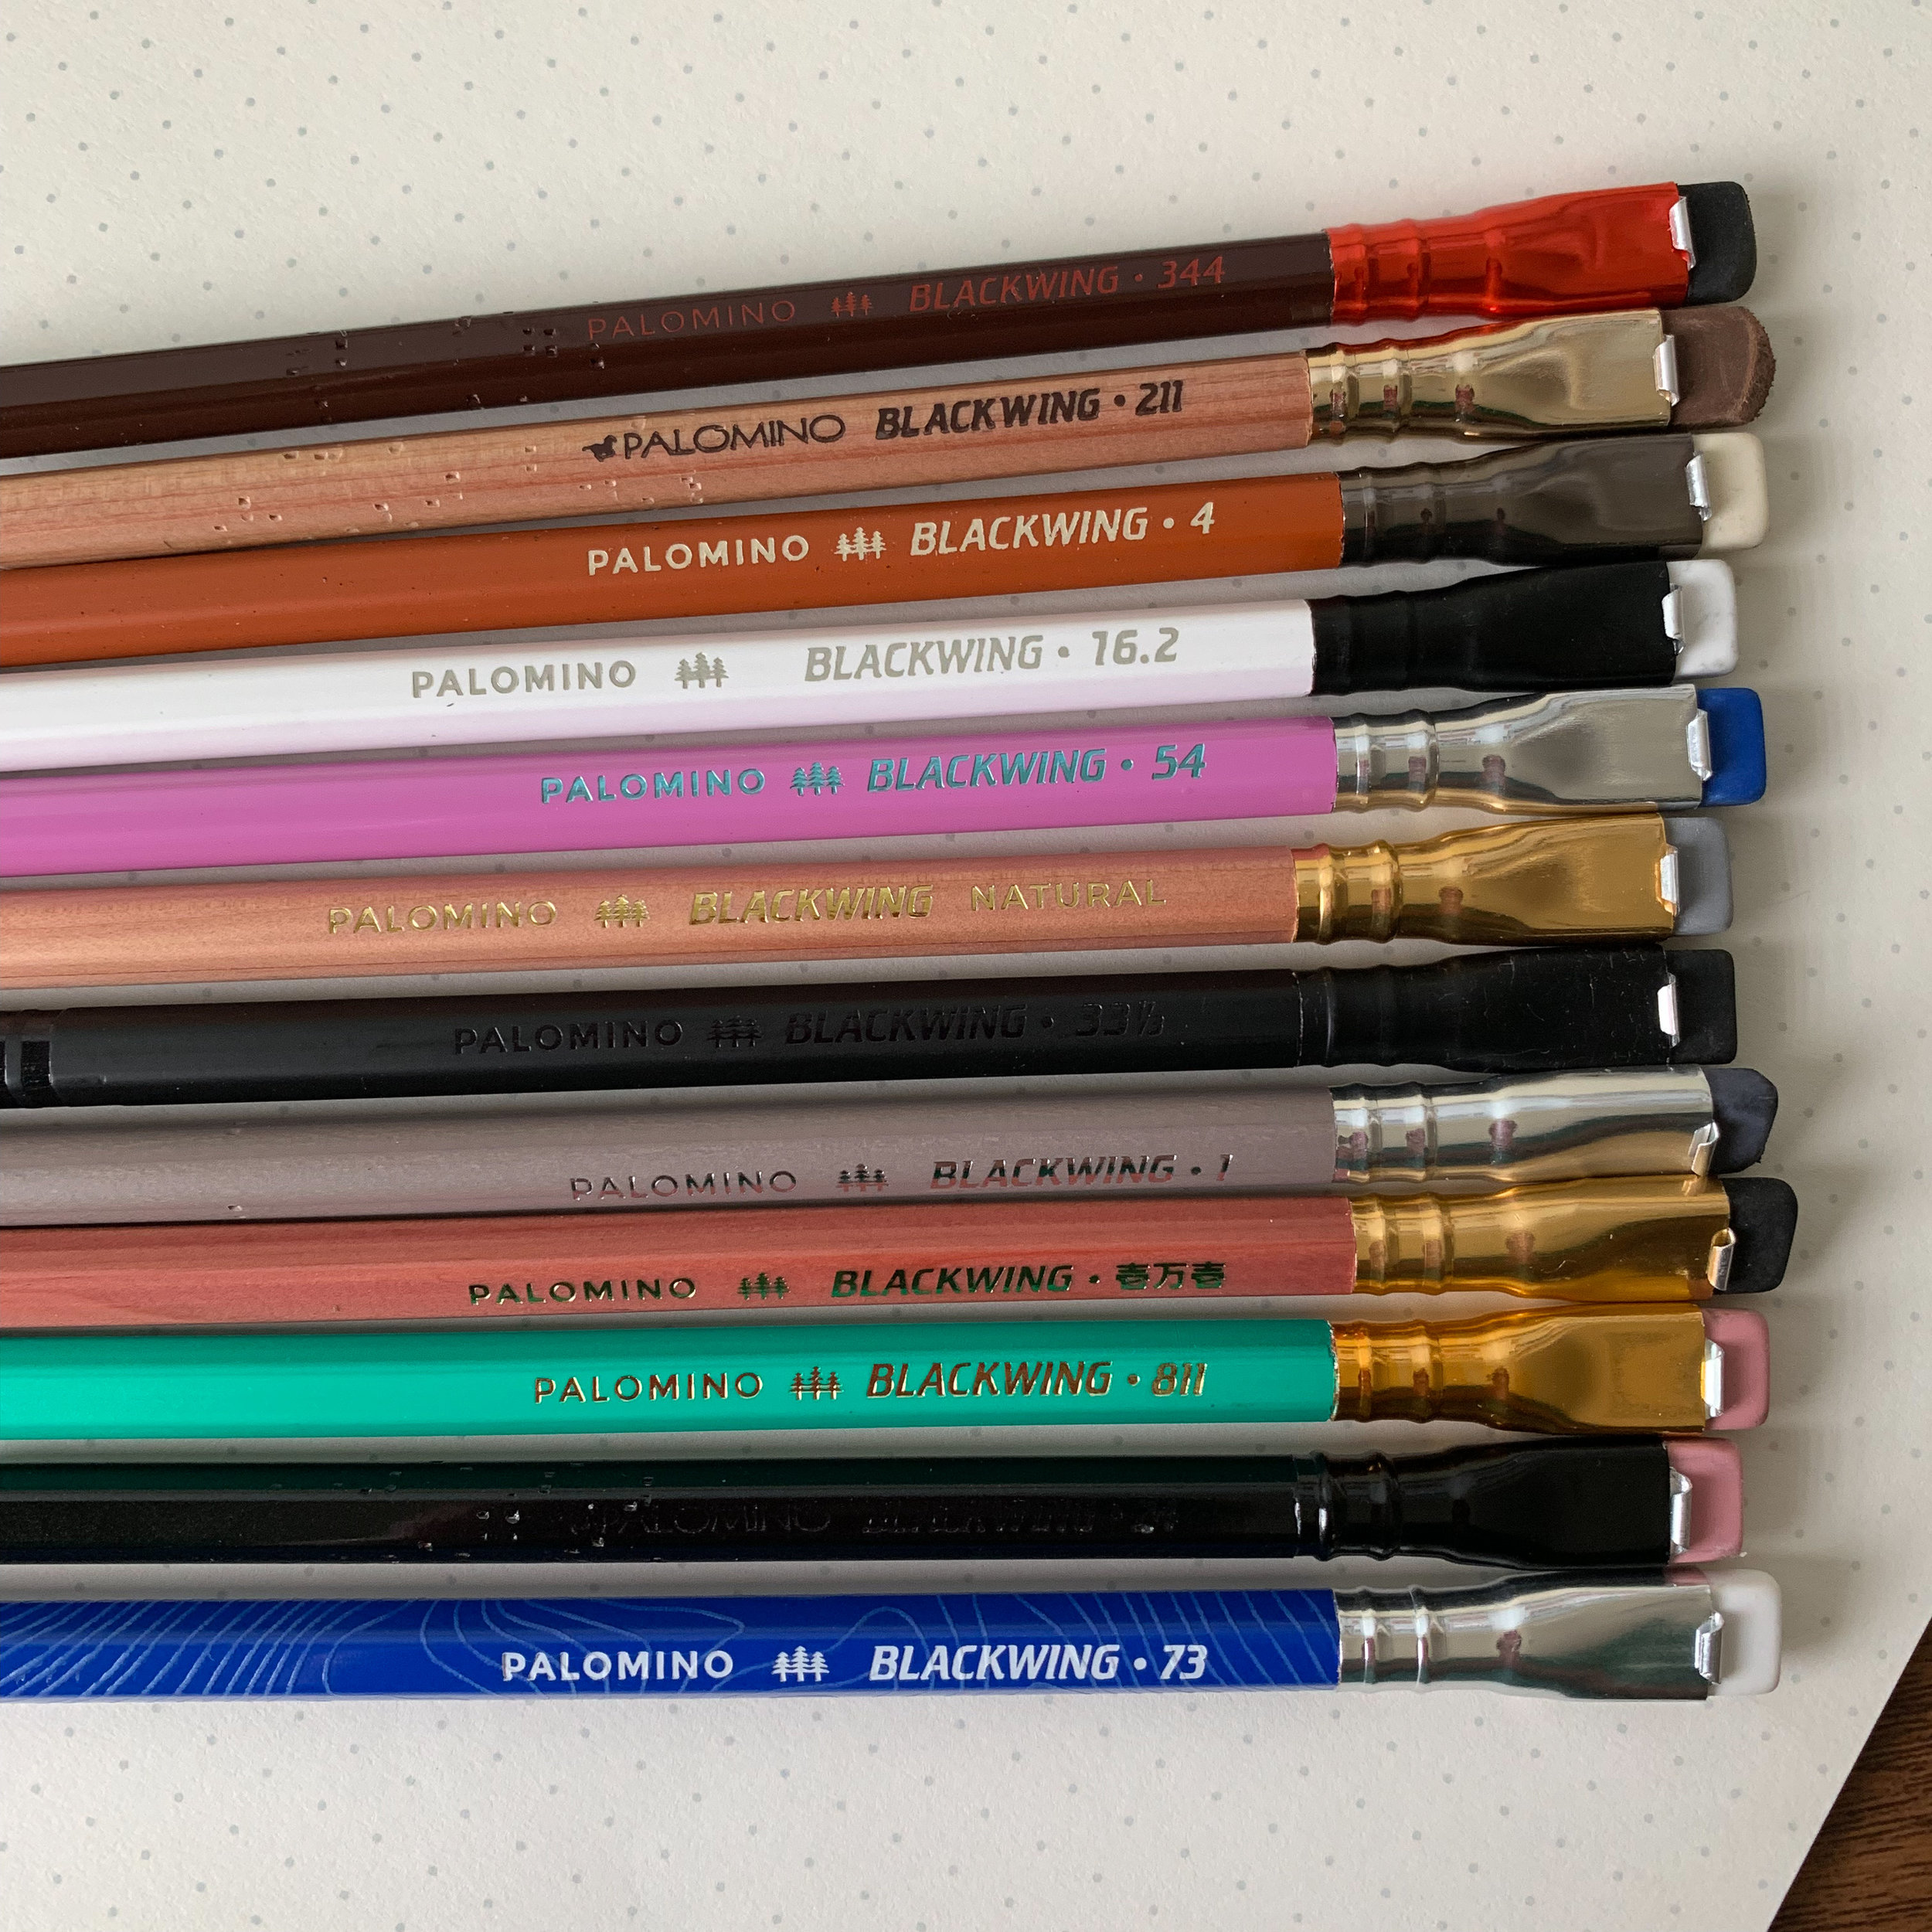 Most of the Blackwing Volumes pencils that I own, minus a few that didn't catch my fancy before I subscribed.